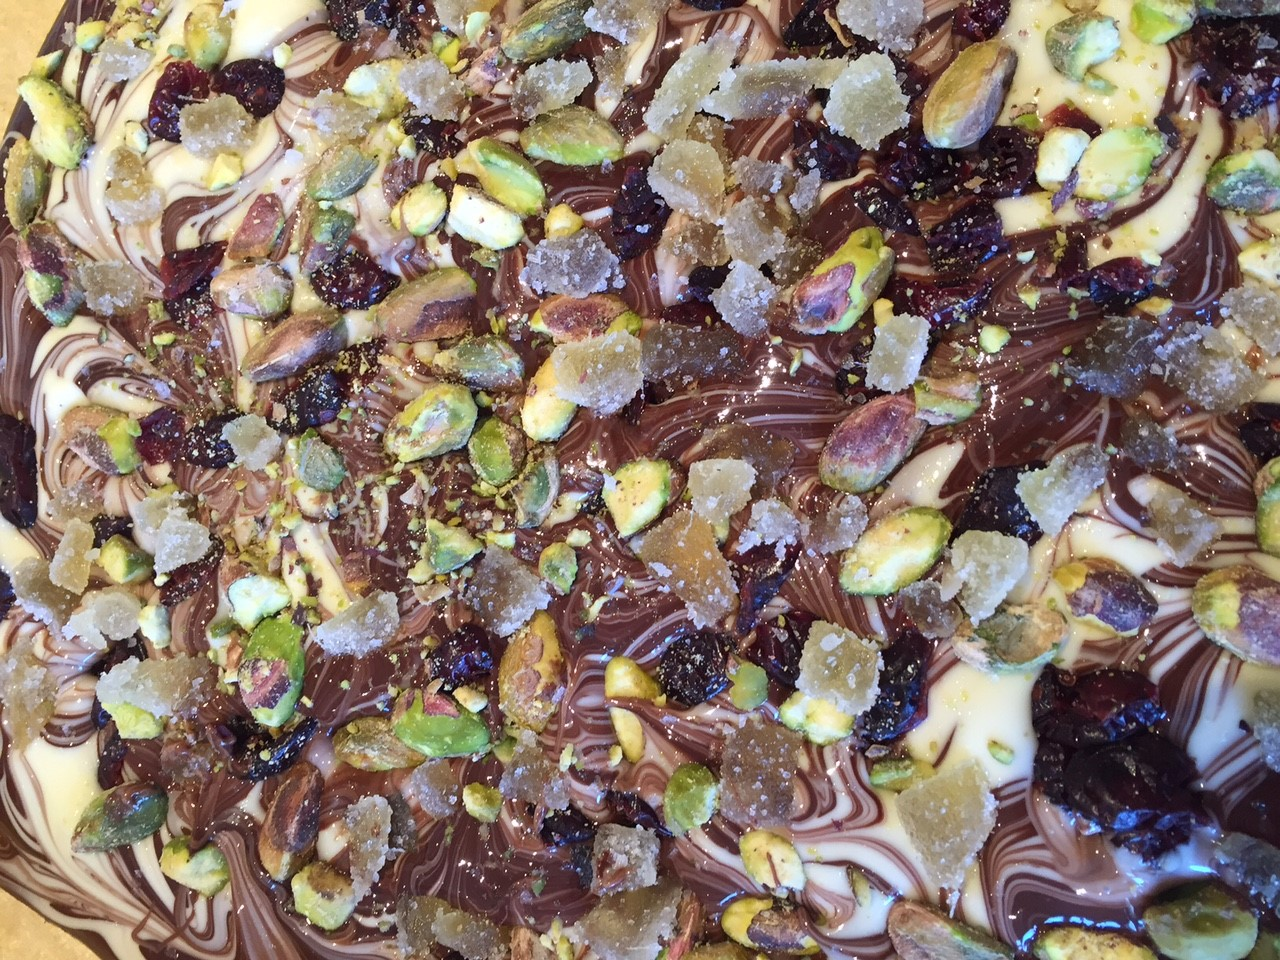 Pistachio, ginger, and cranberry chocolate bark